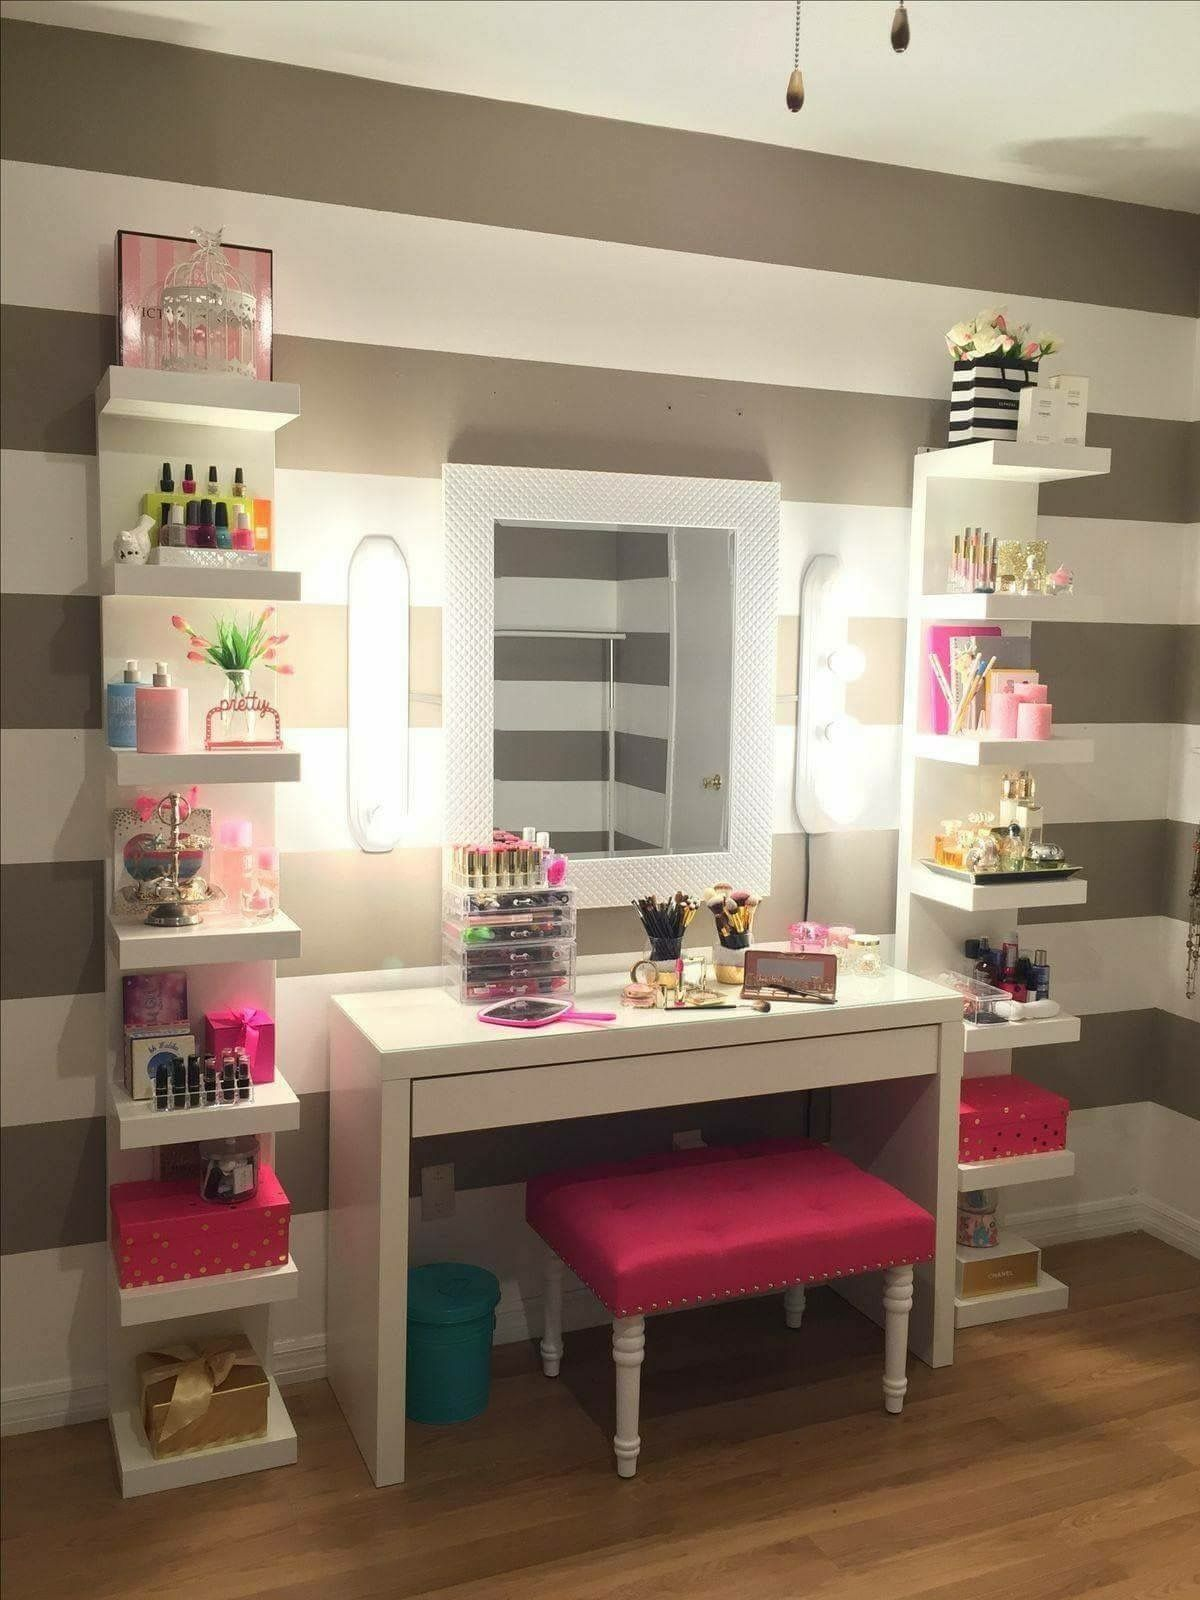 Photo of 13 Beautiful Makeup Room Ideas, Organizer and Decorating